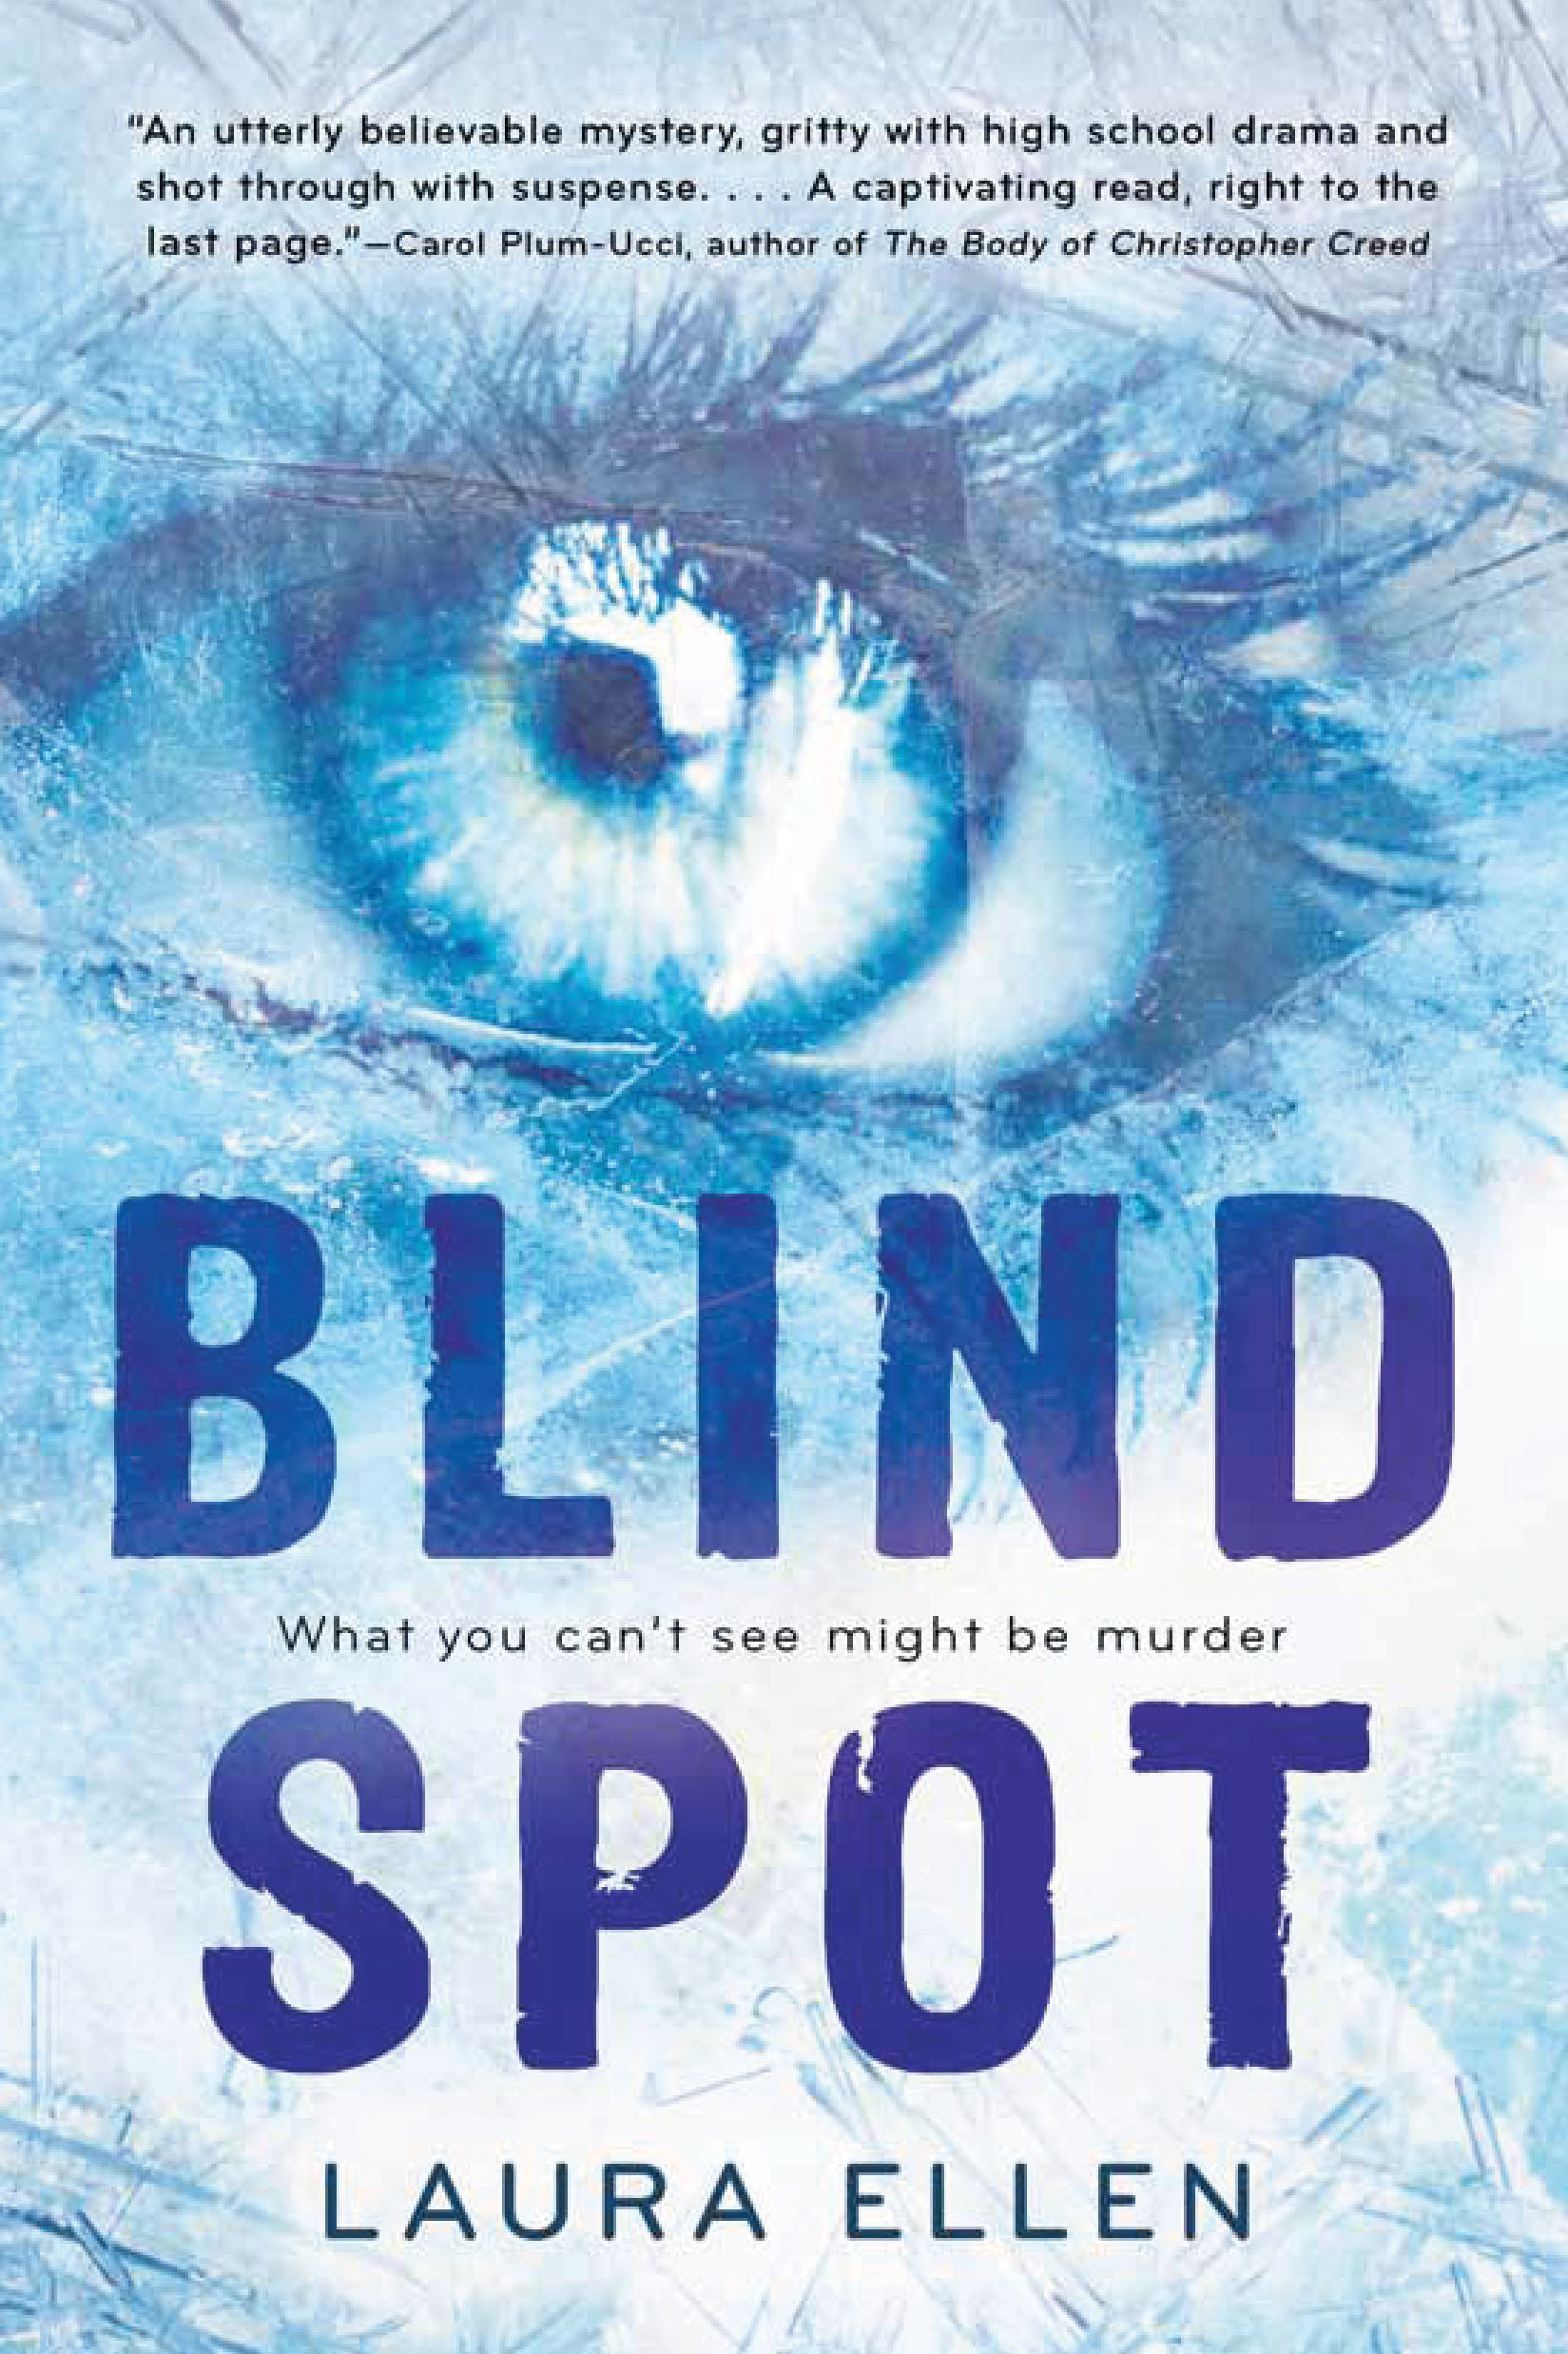 Paperback Edition Of Blind Spot By Laura Ellen Laura Ellen